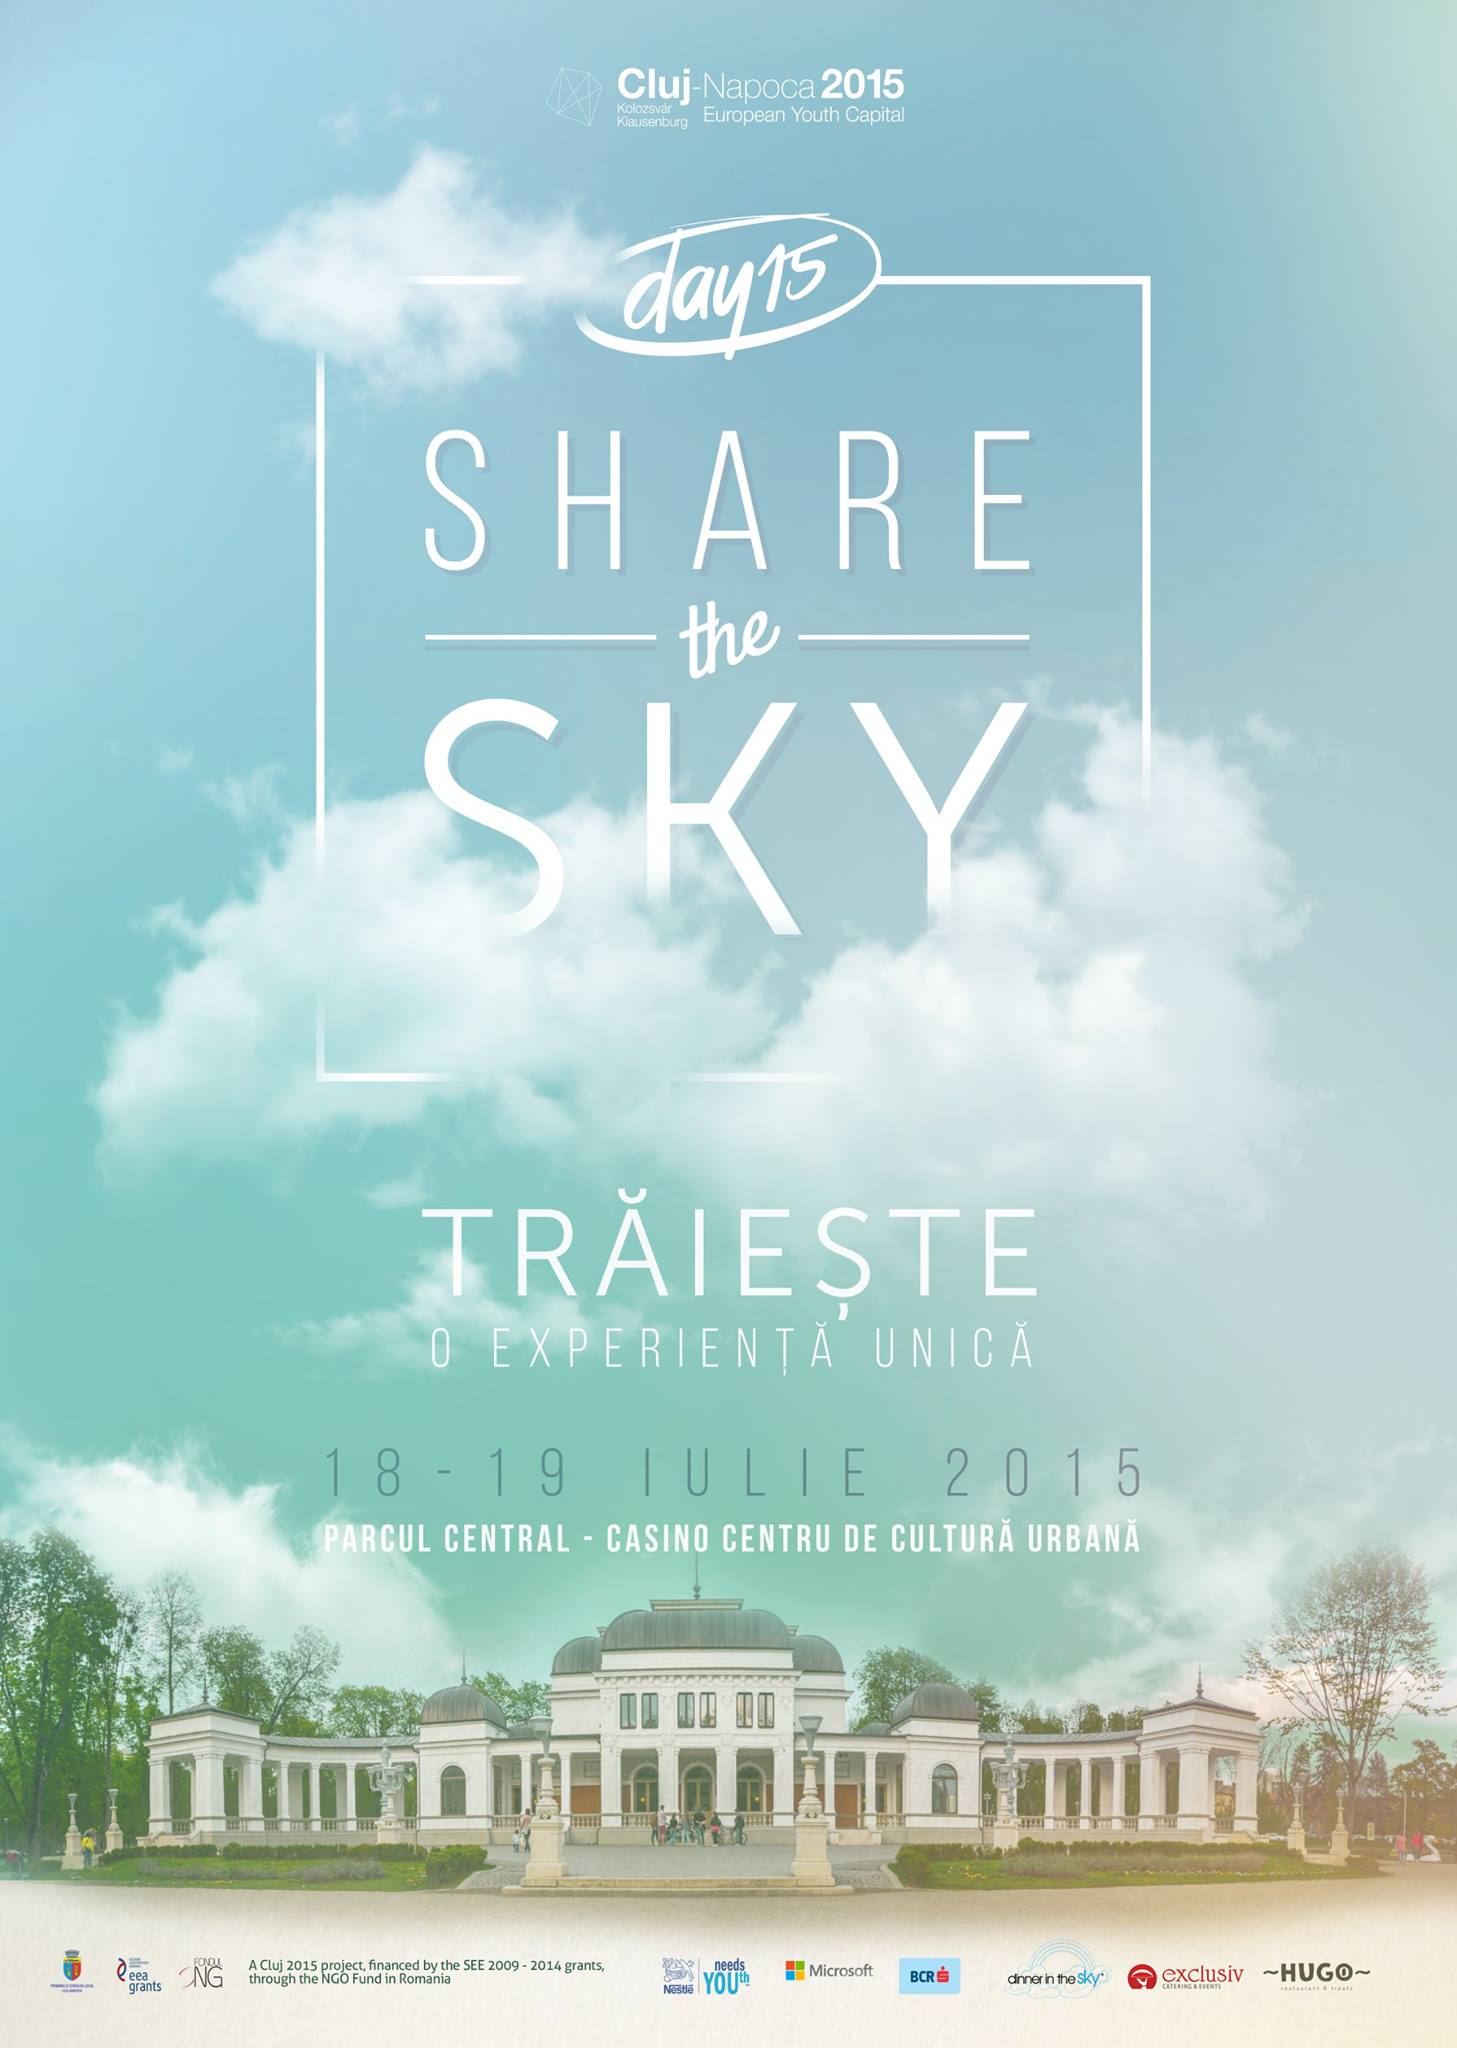 #Day15: Share the sky